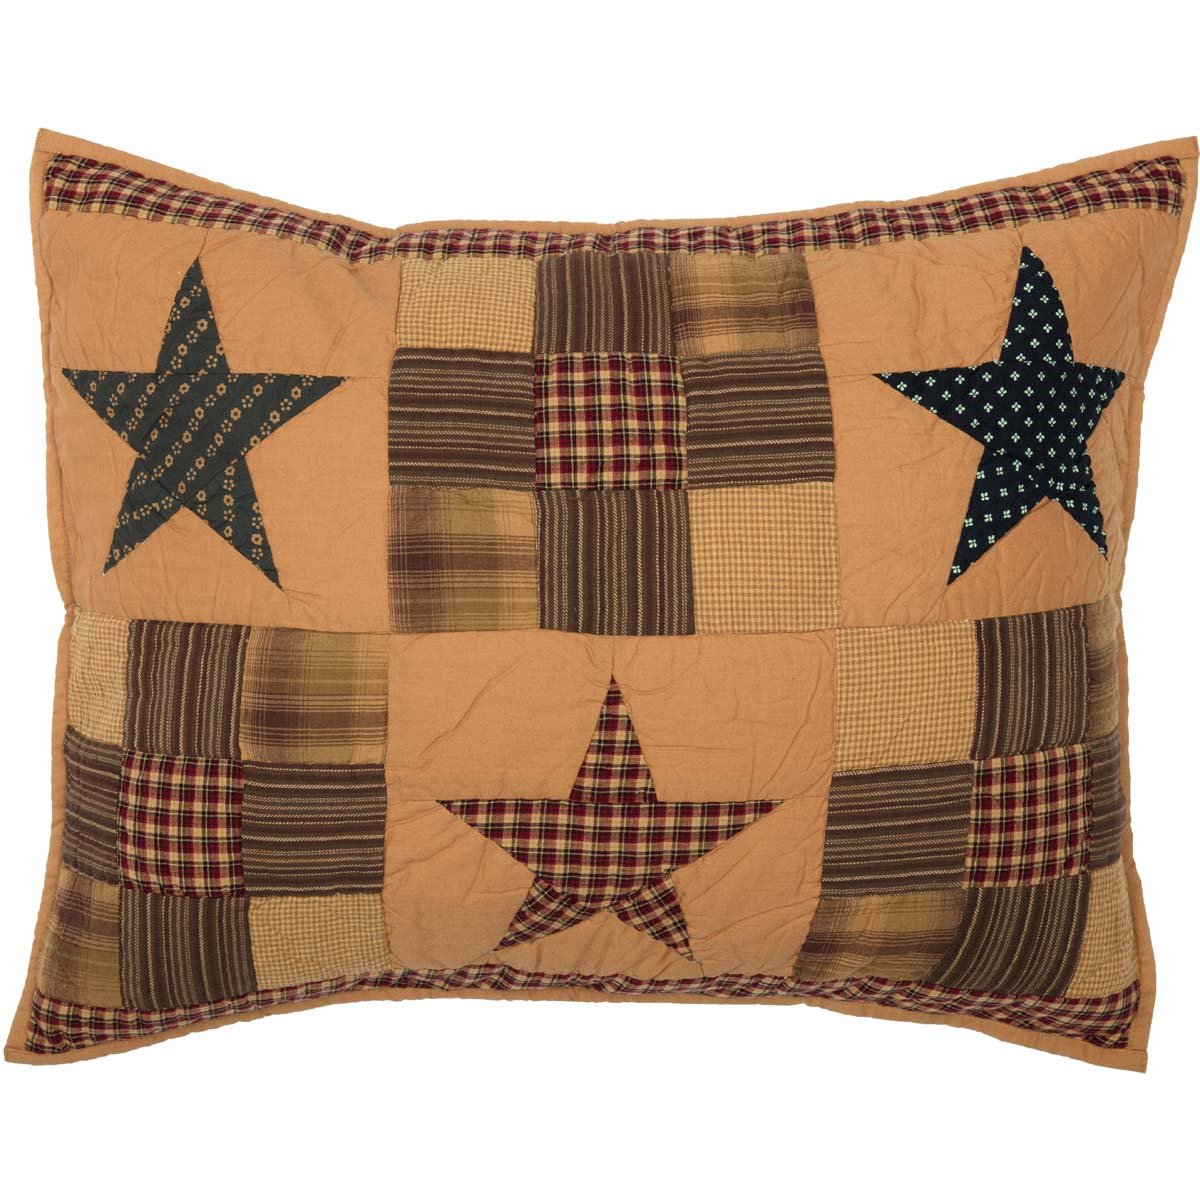 VHC Brands Ninepatch Star King Patchwork Quilted Cotton Sham in Tan